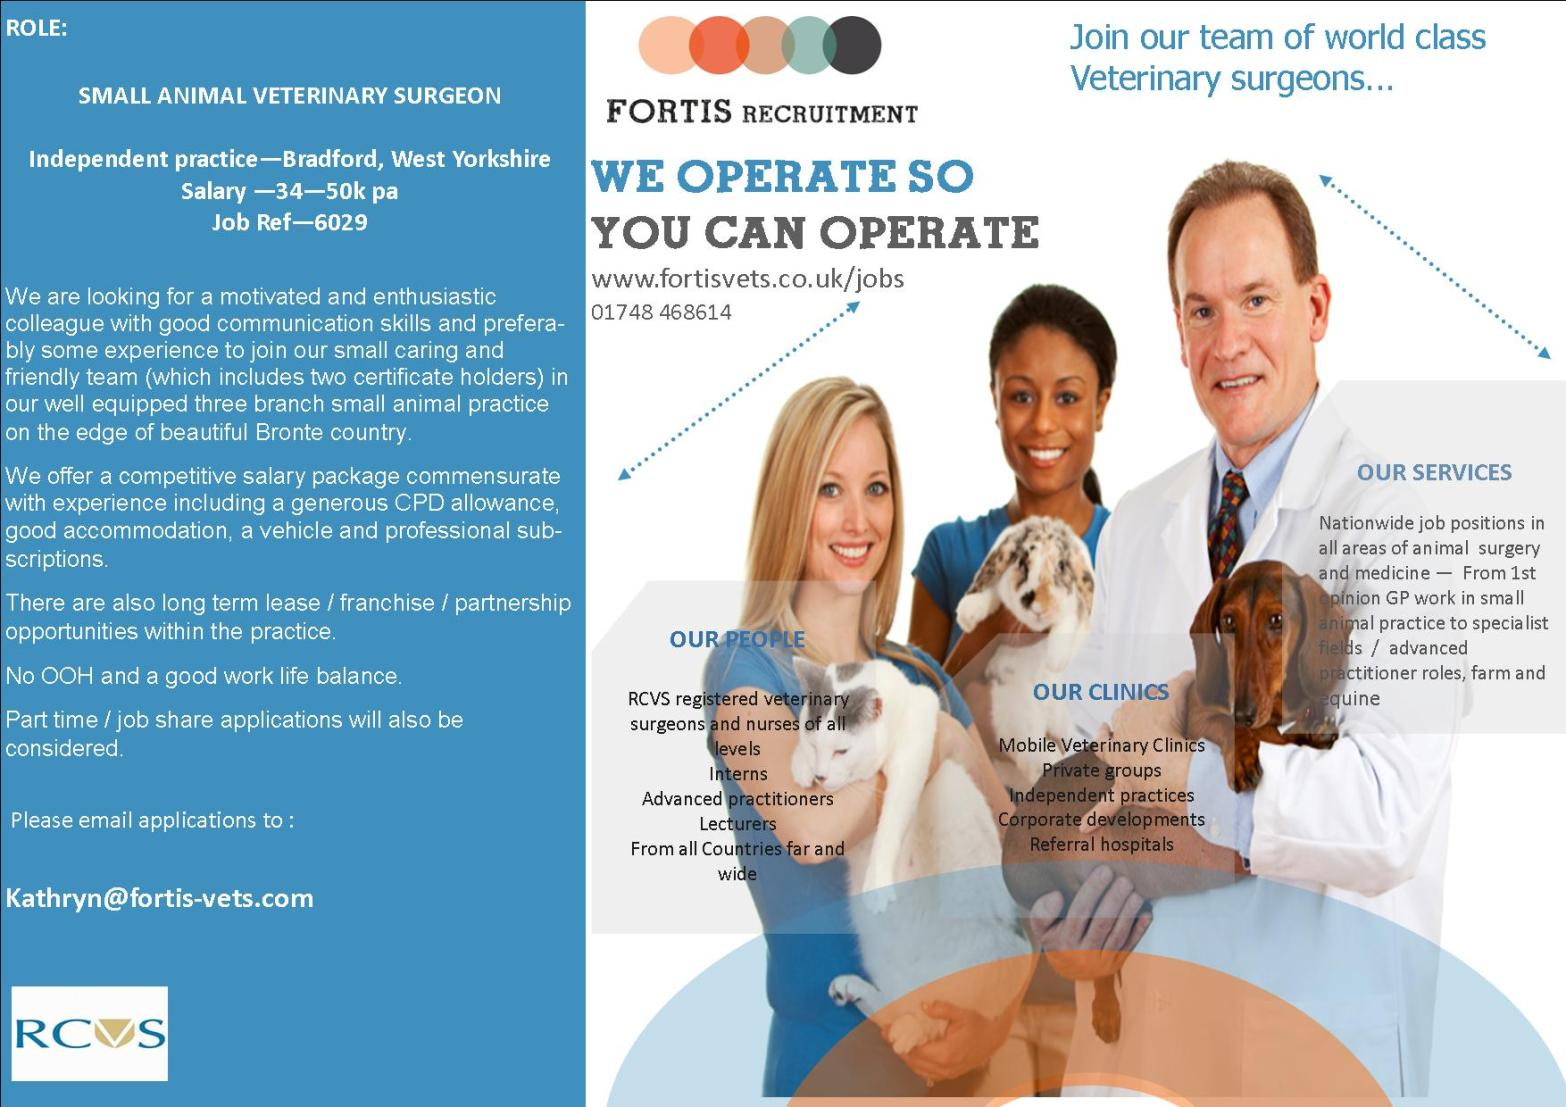 SMALL ANIMAL VETERINARY SURGEON 250118